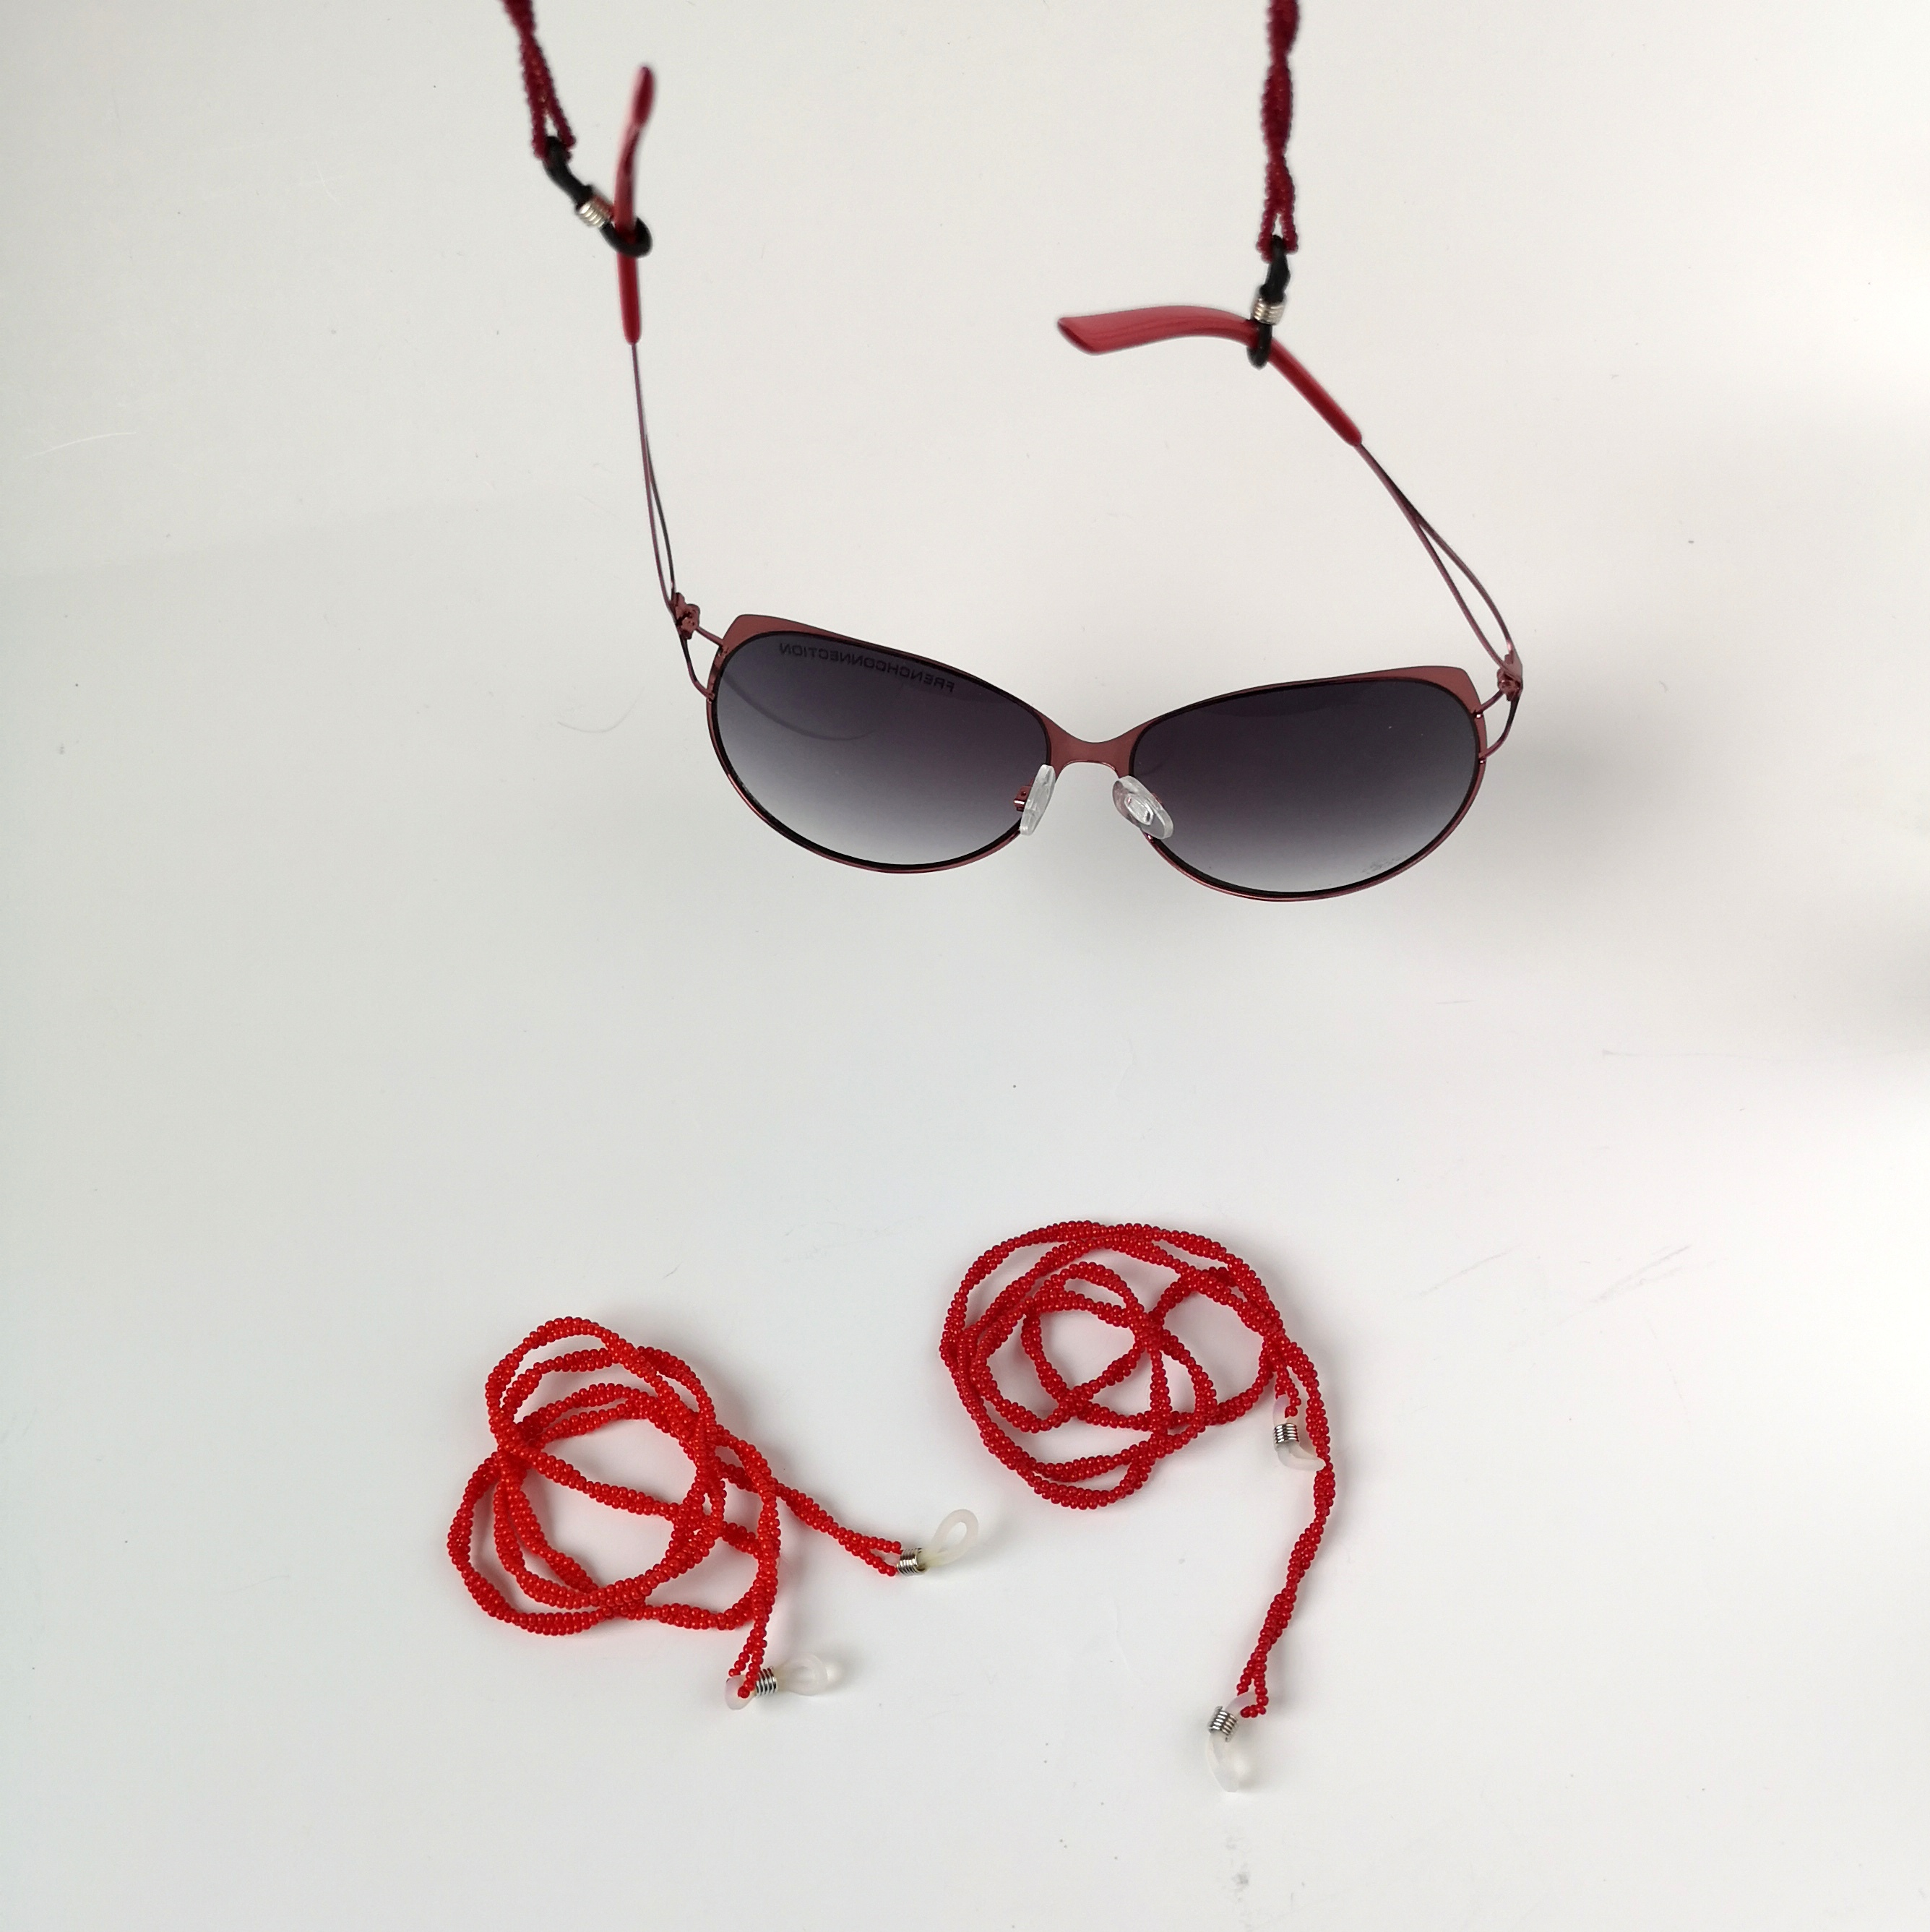 K19064 CHAIN glasses